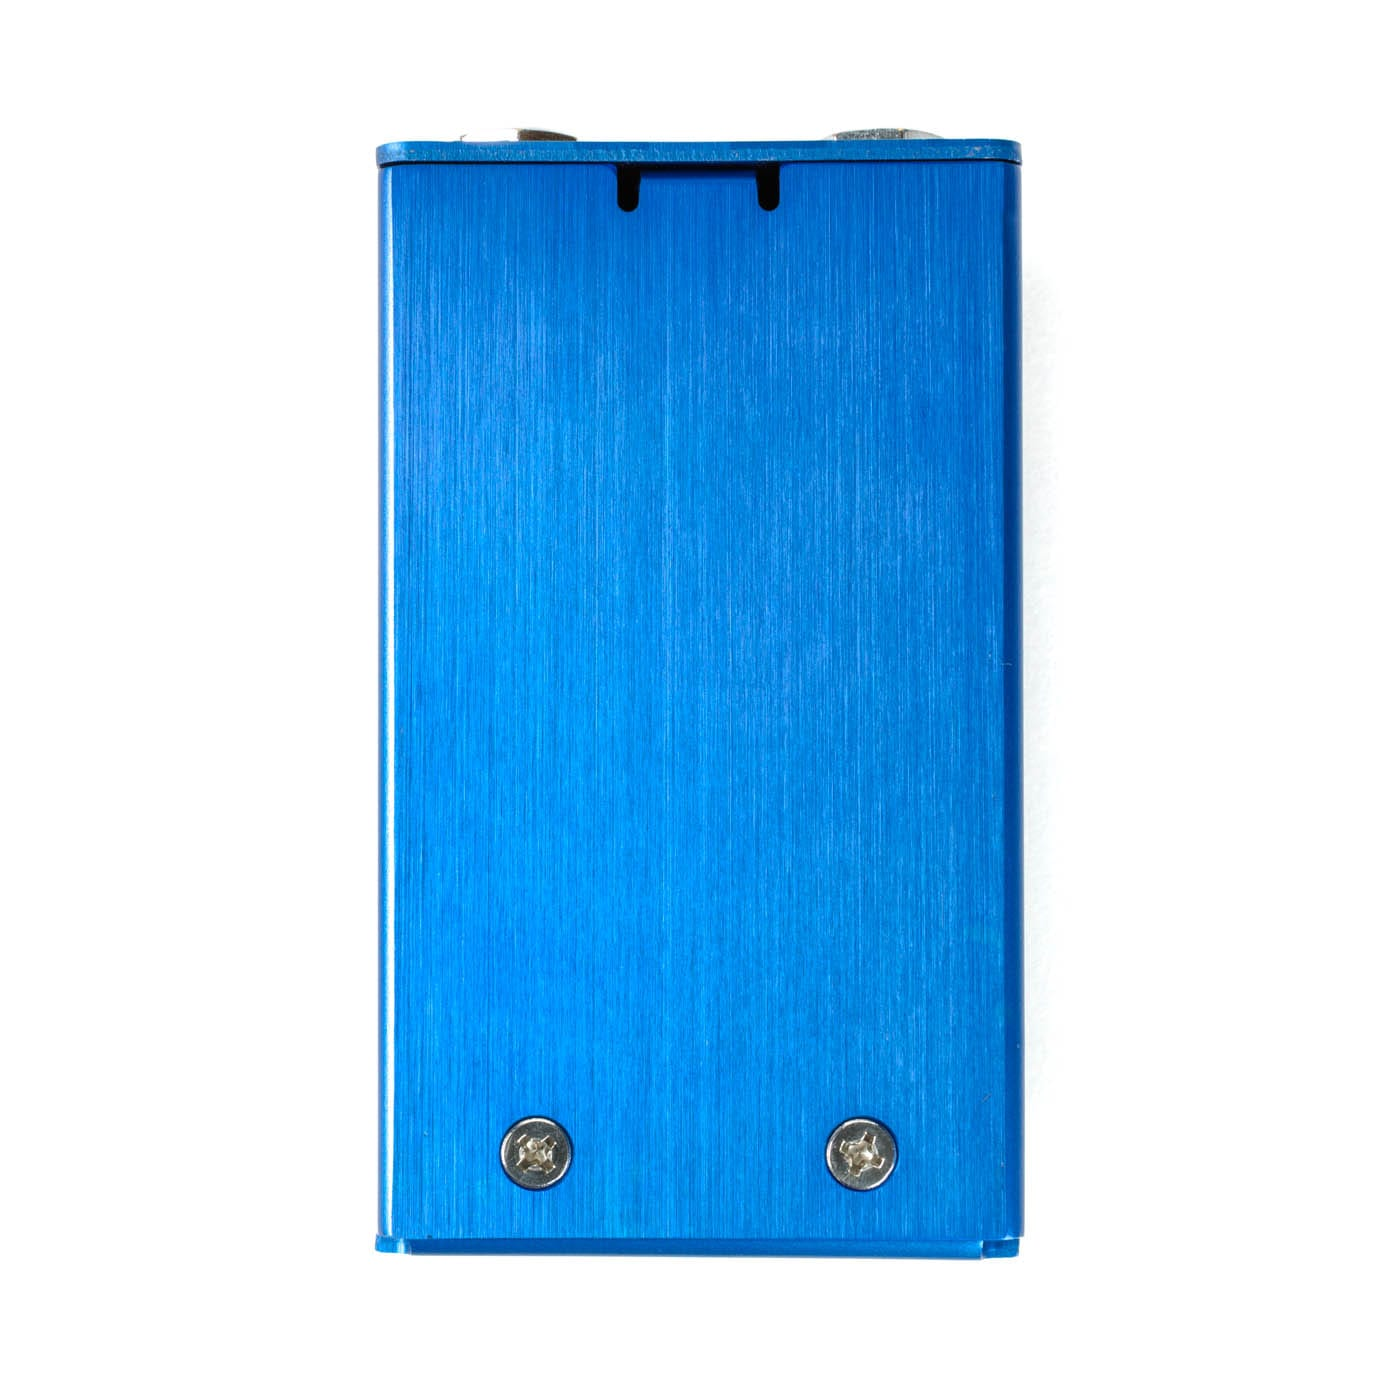 Blue Hippo MK III bottom plate